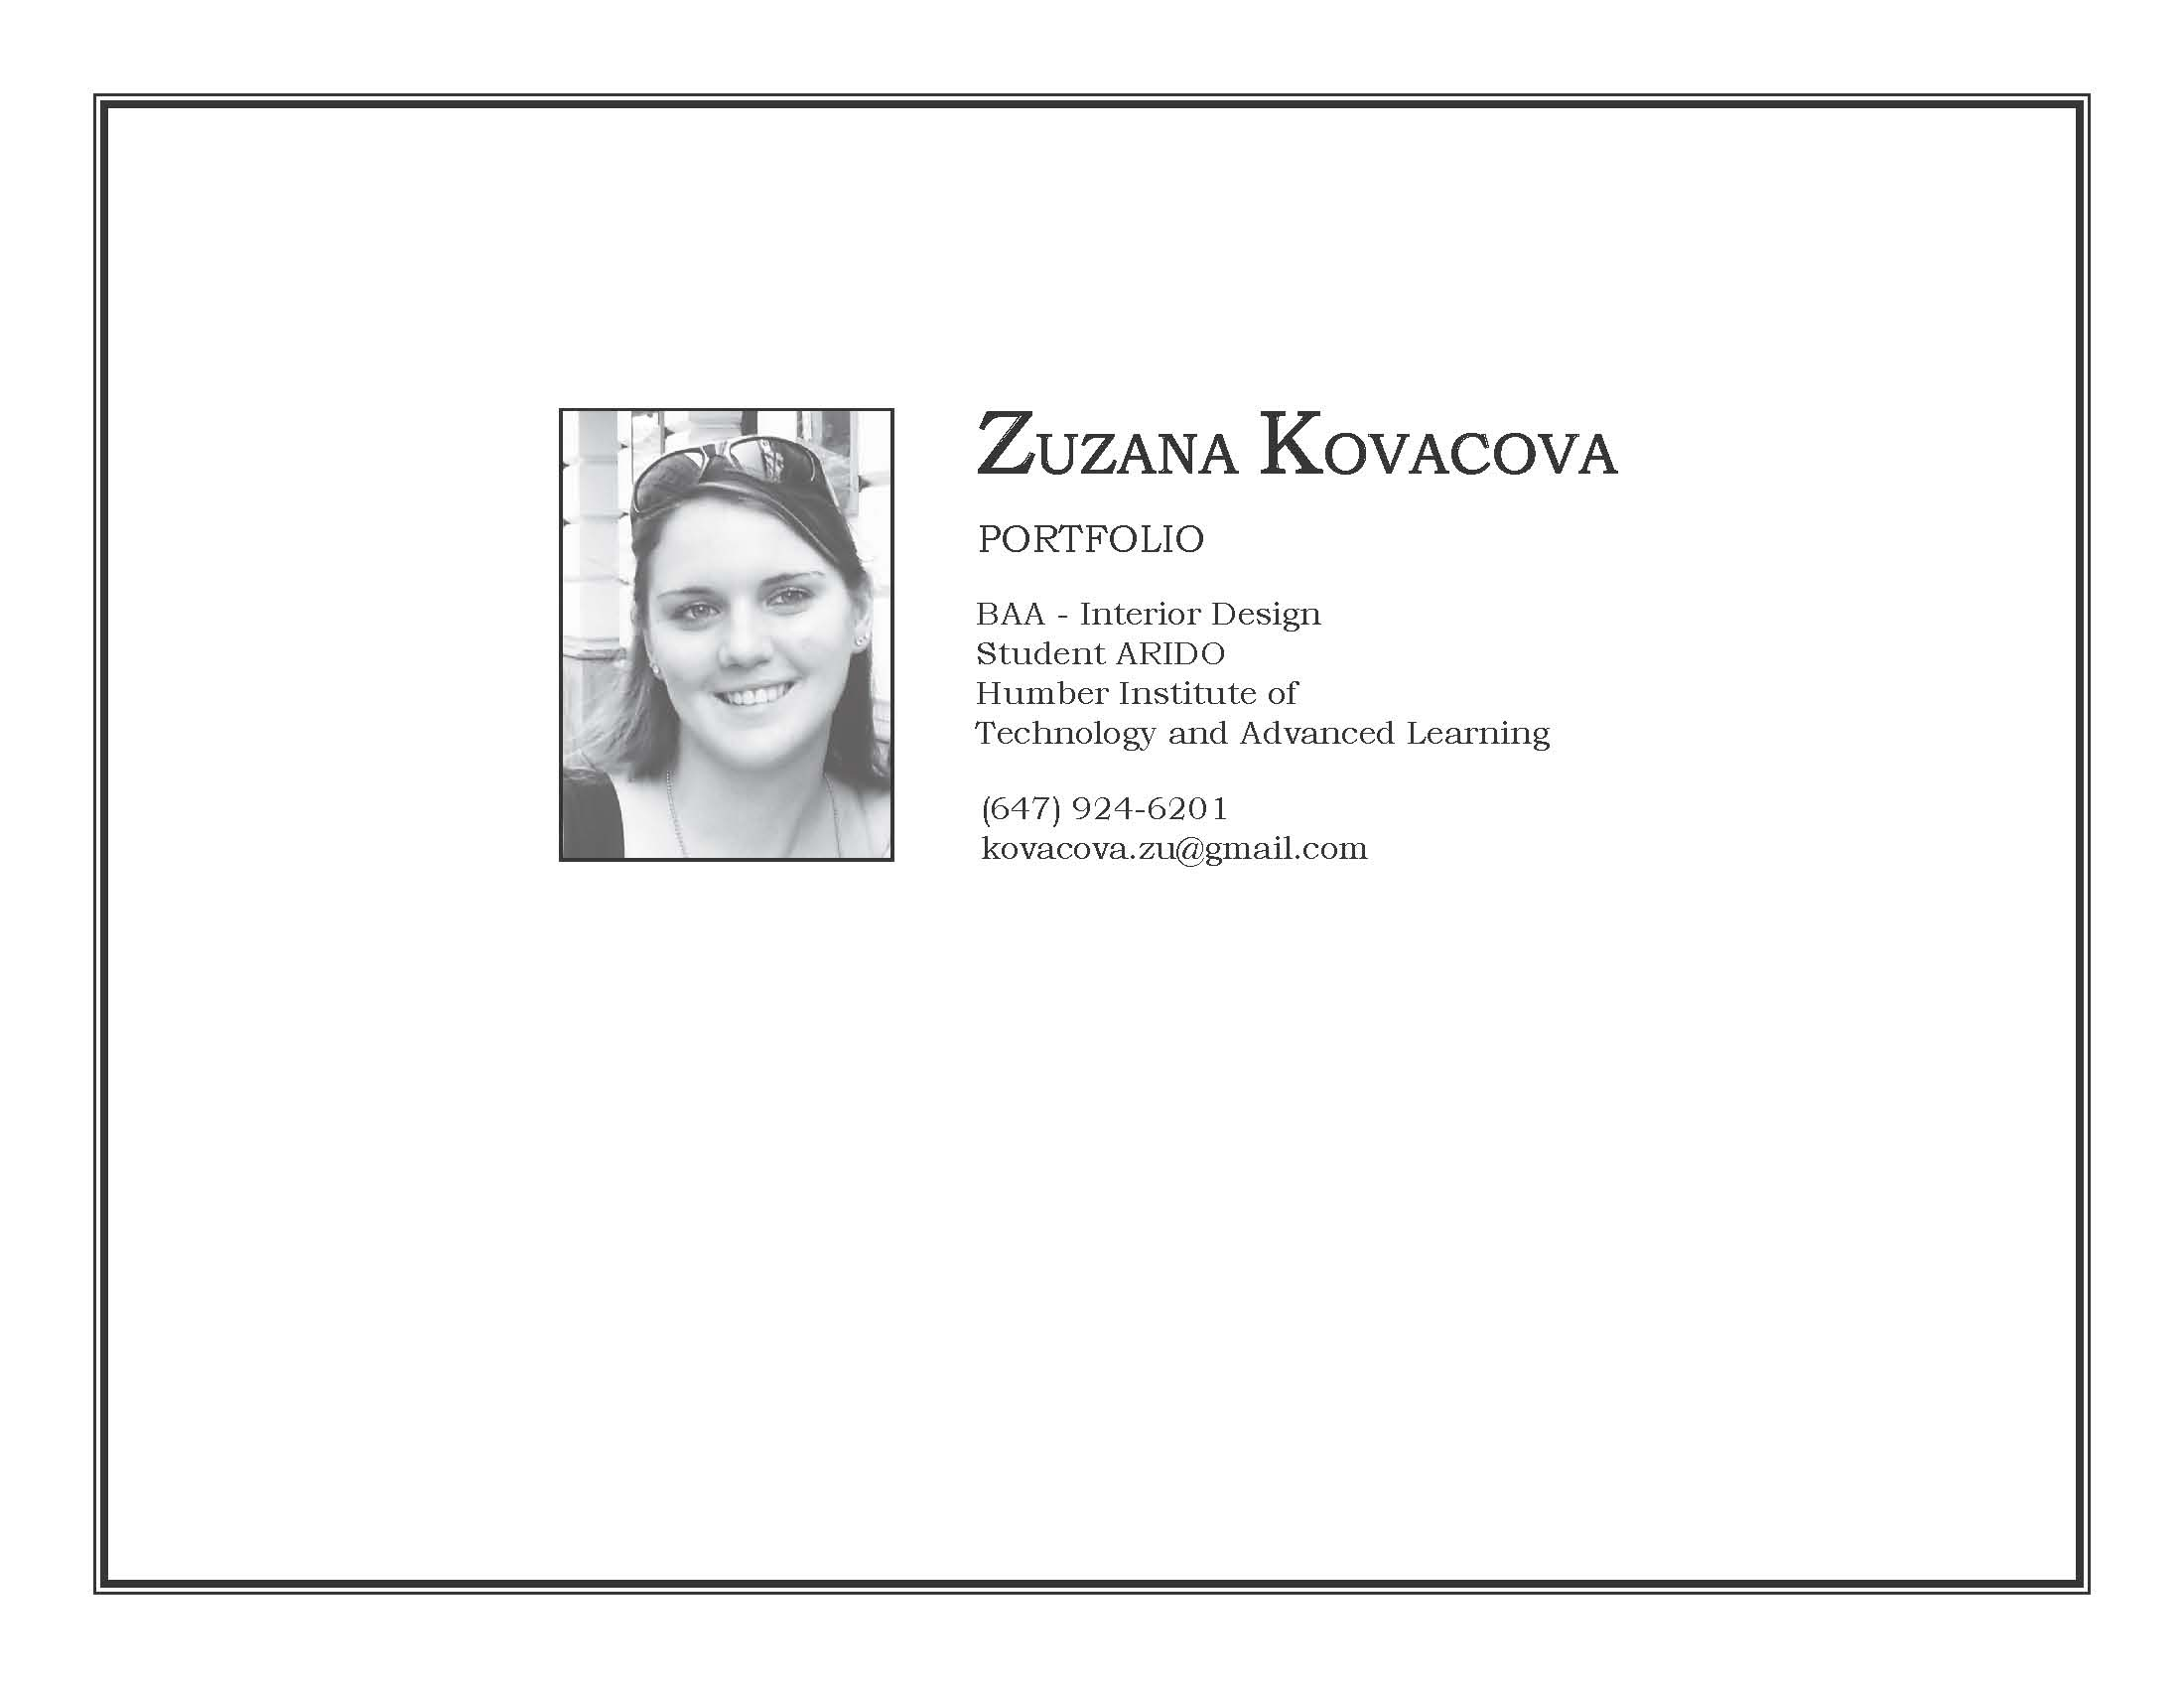 resume portfolio collections template holder savvy personal vcard